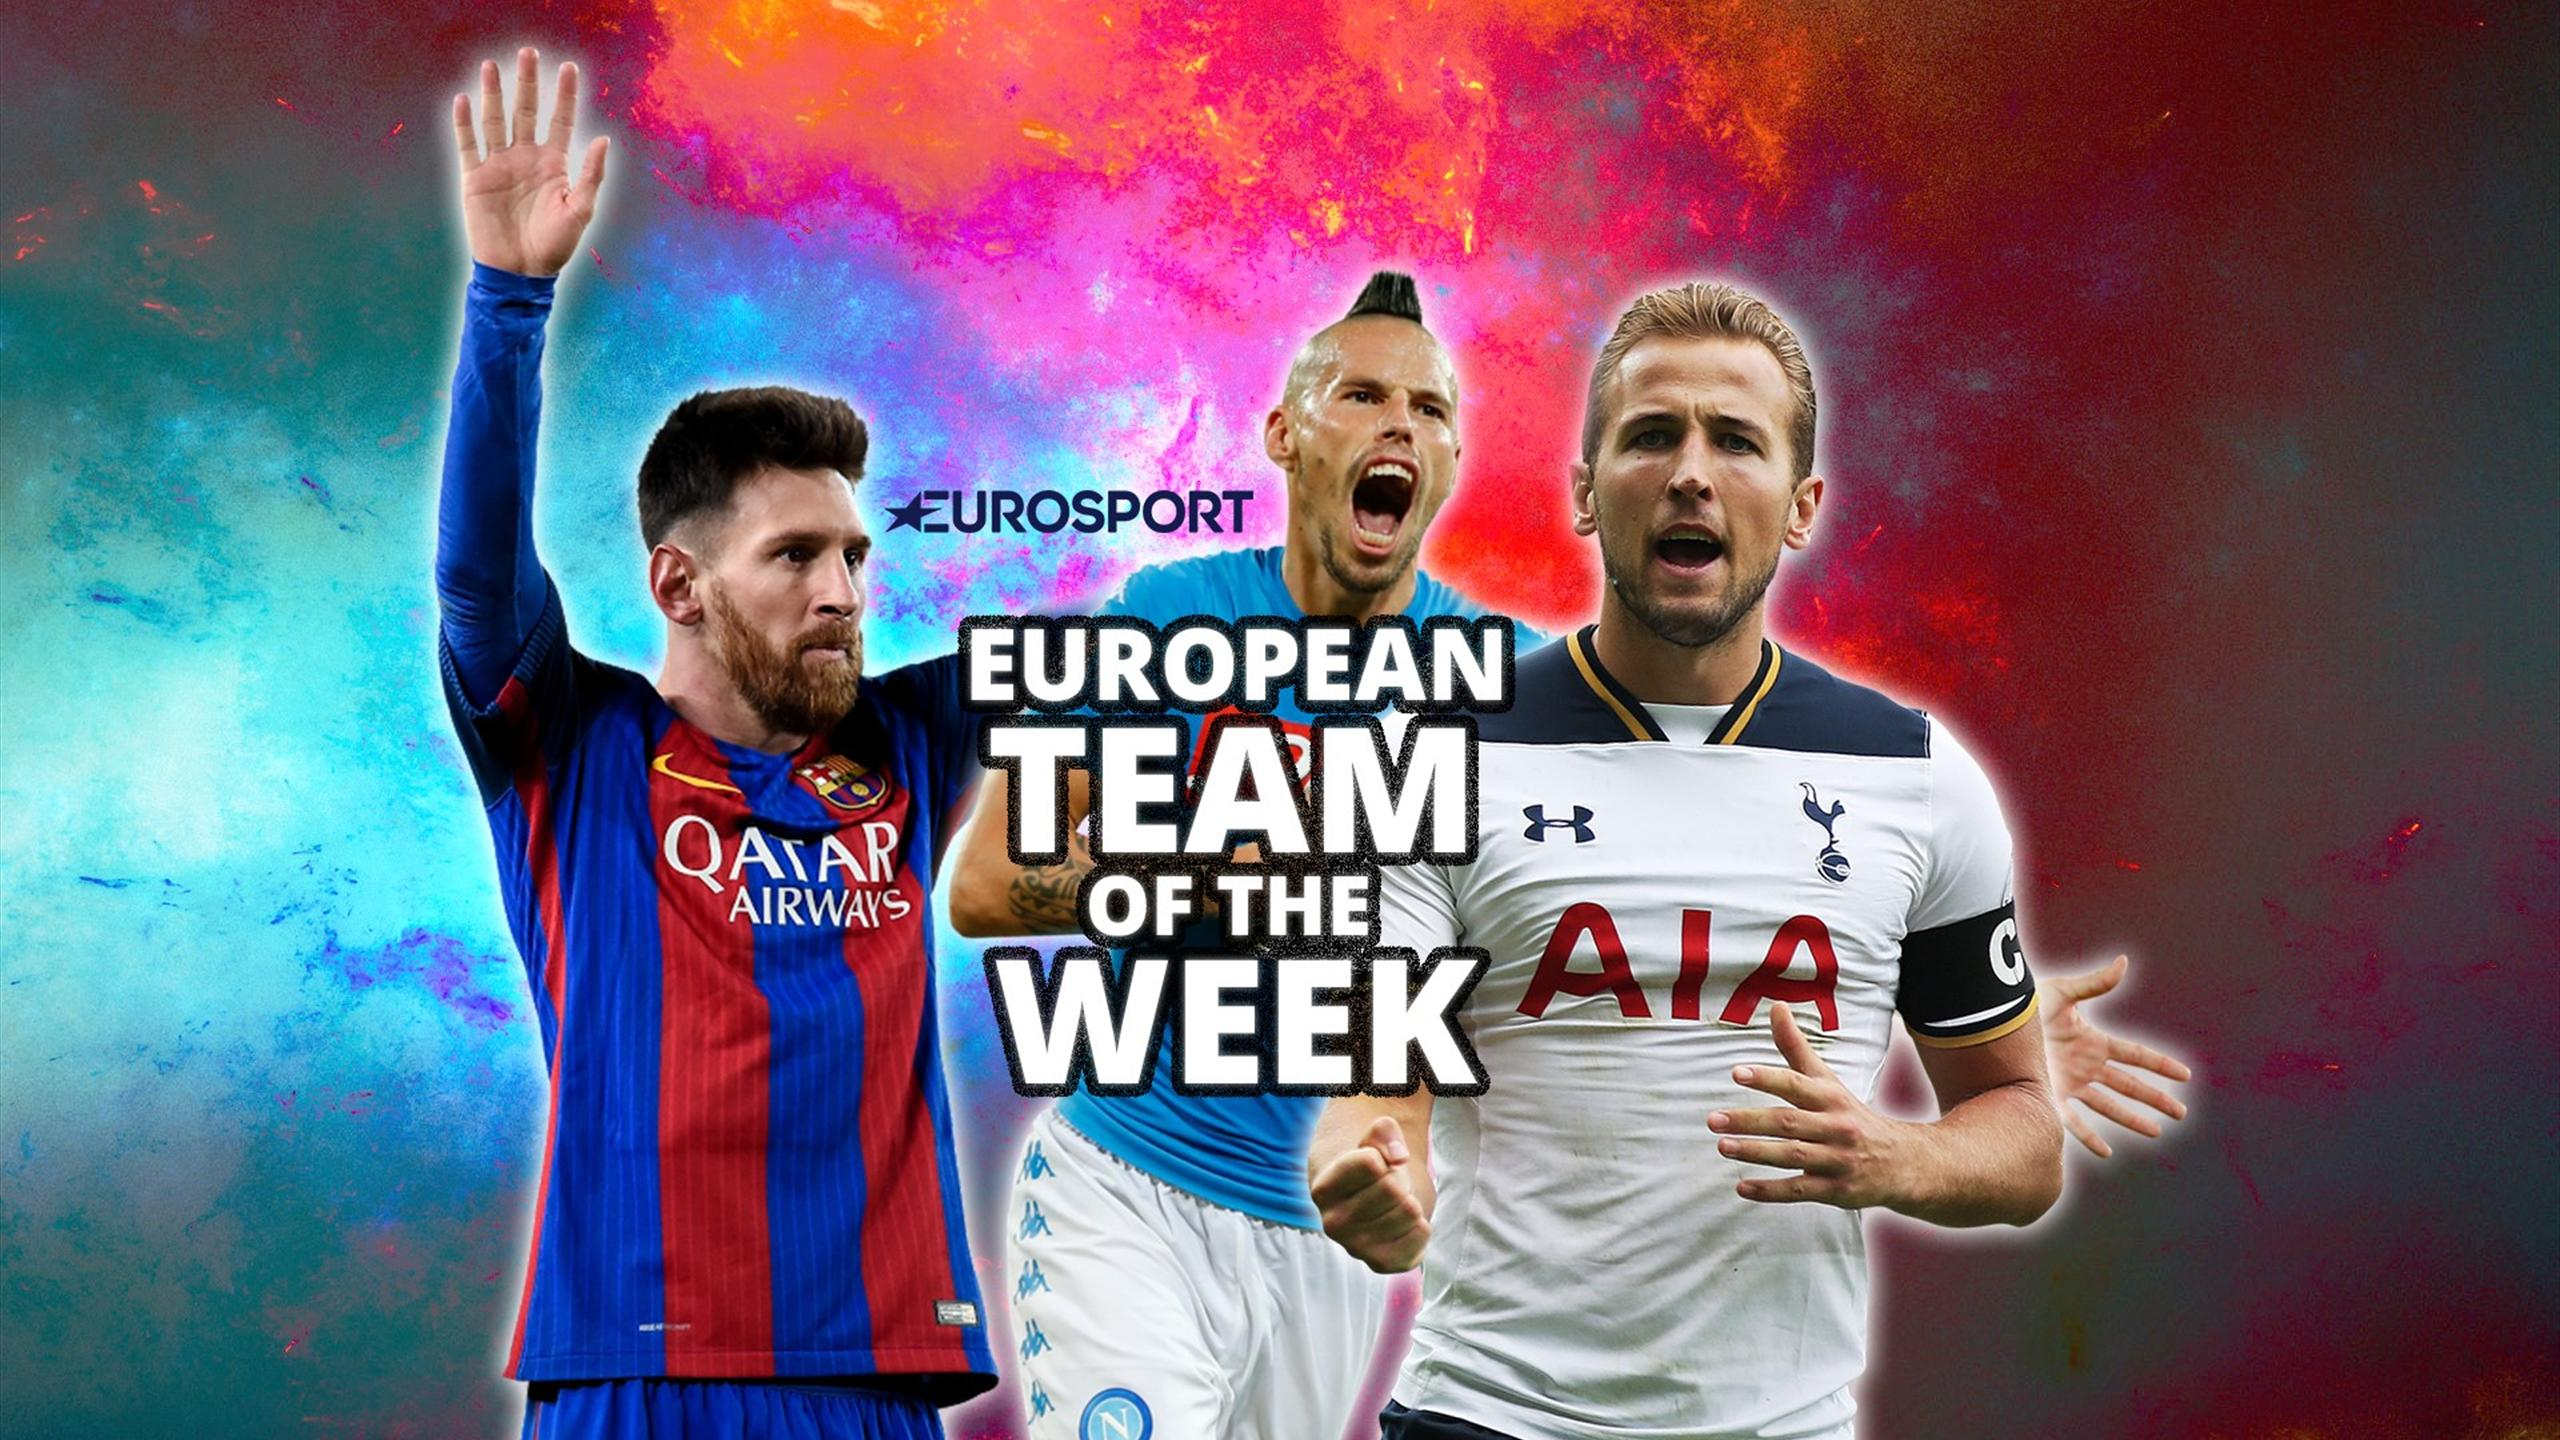 Magic Messi eclipsed by Spurs' hat-trick hero - European Team of the Week